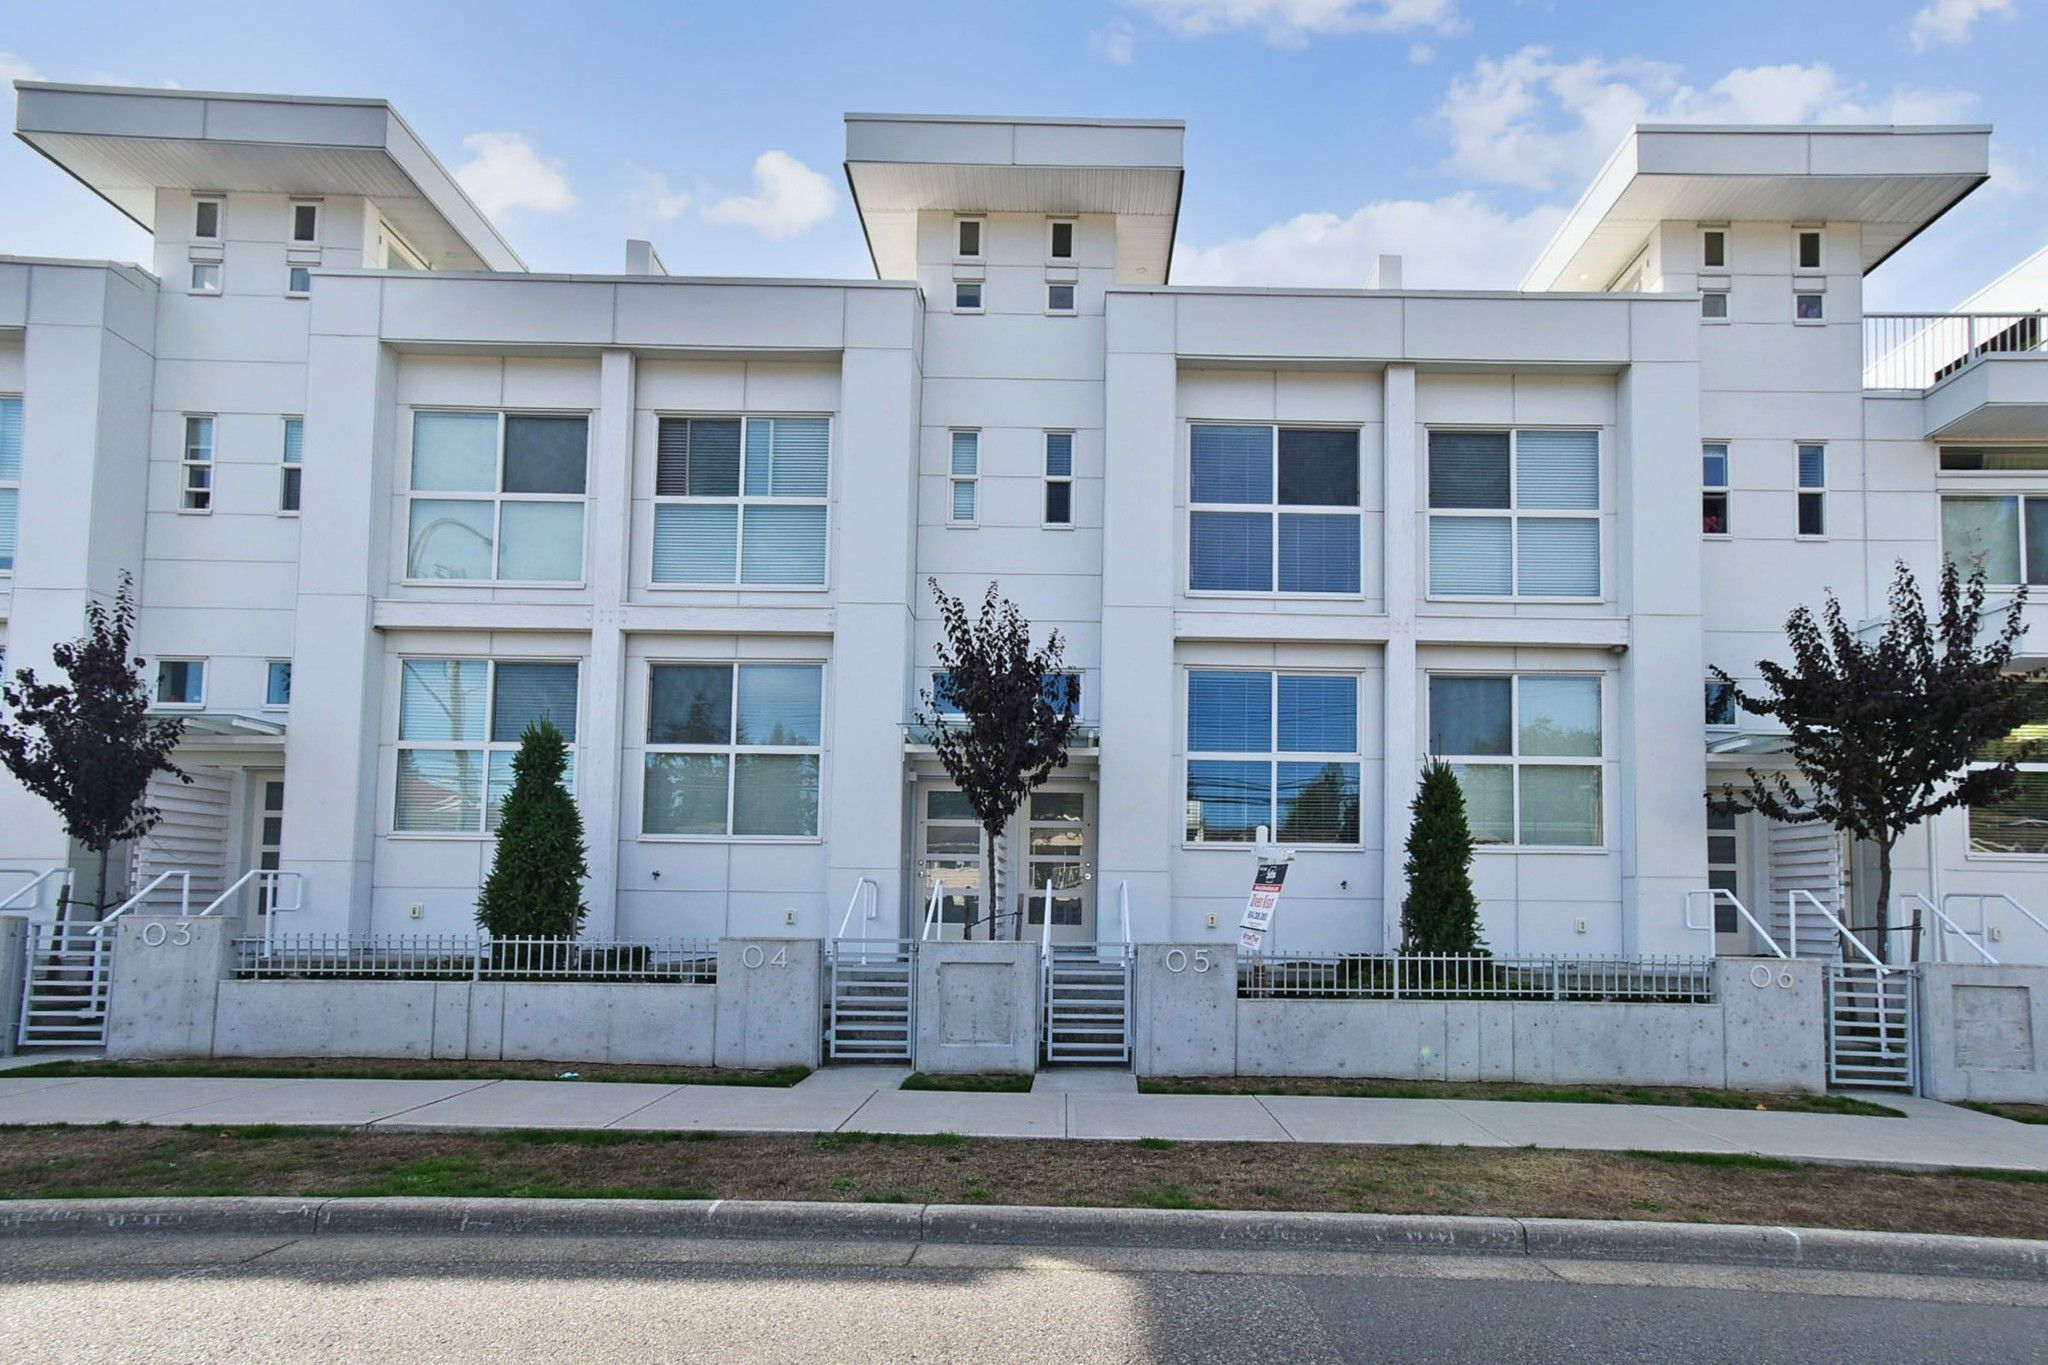 """Main Photo: 5 2505 WARE Street in Abbotsford: Central Abbotsford Townhouse for sale in """"Mill District"""" : MLS®# R2620668"""